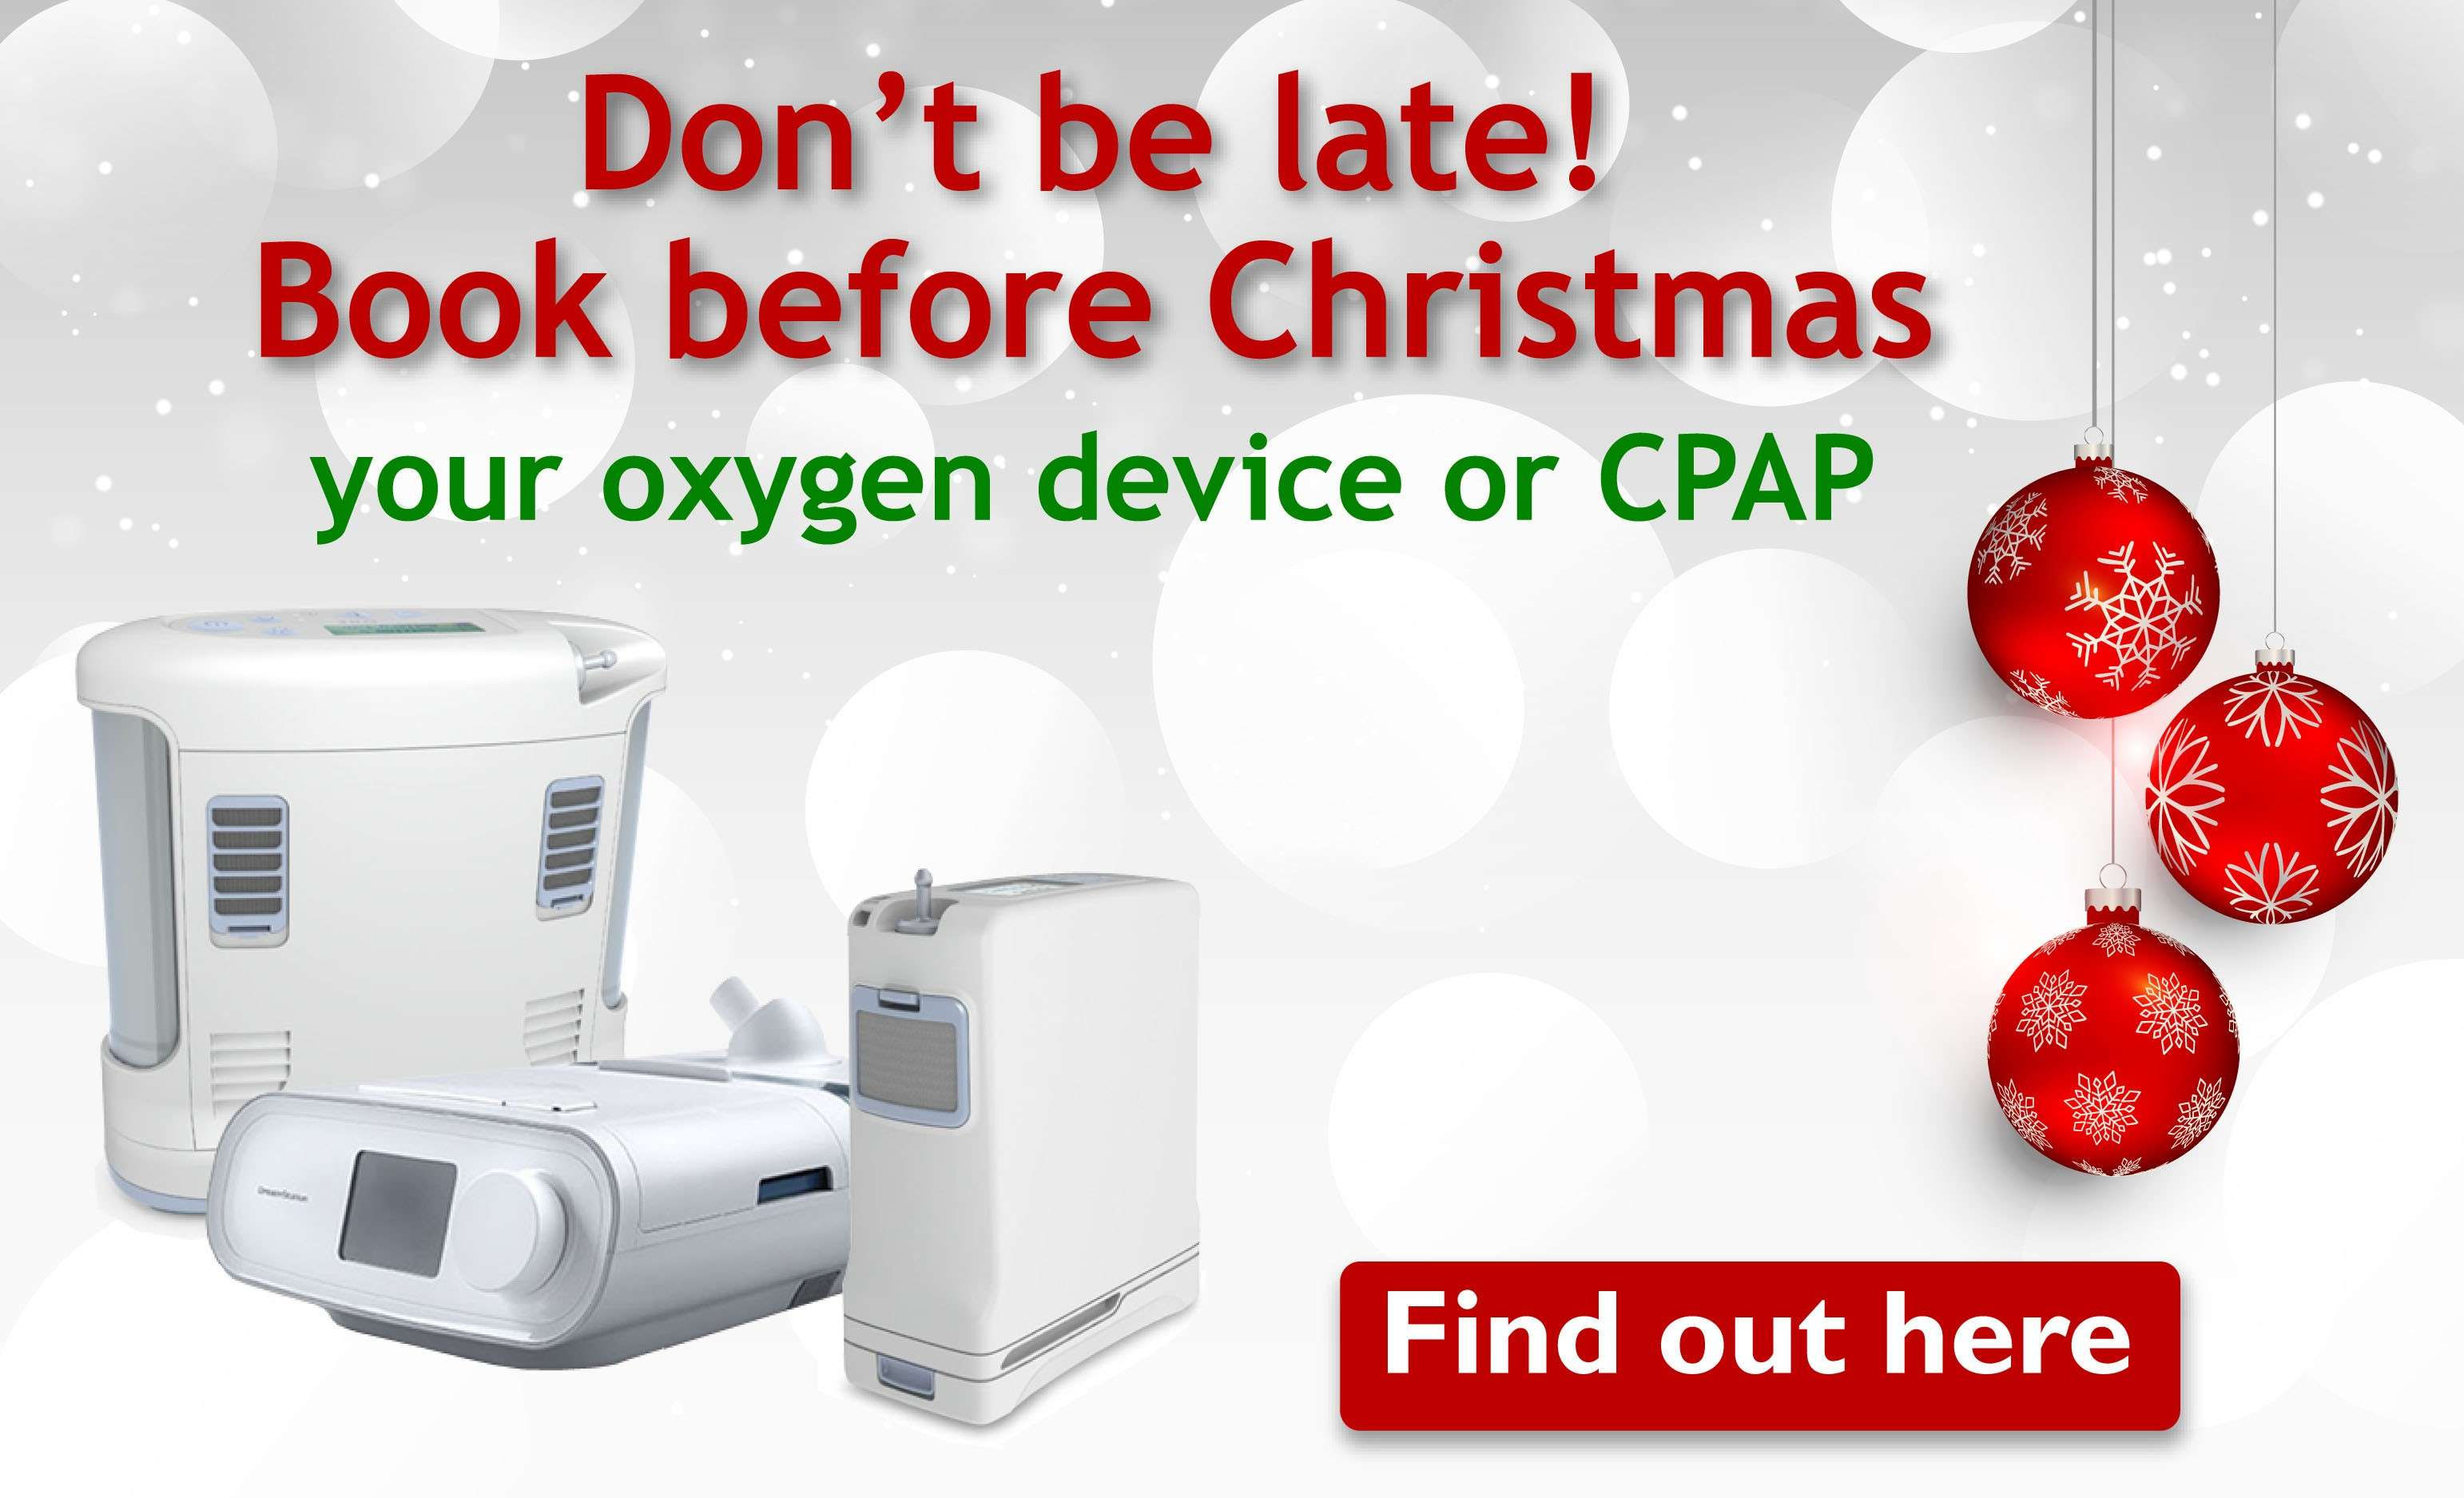 Book your device before Christmas!